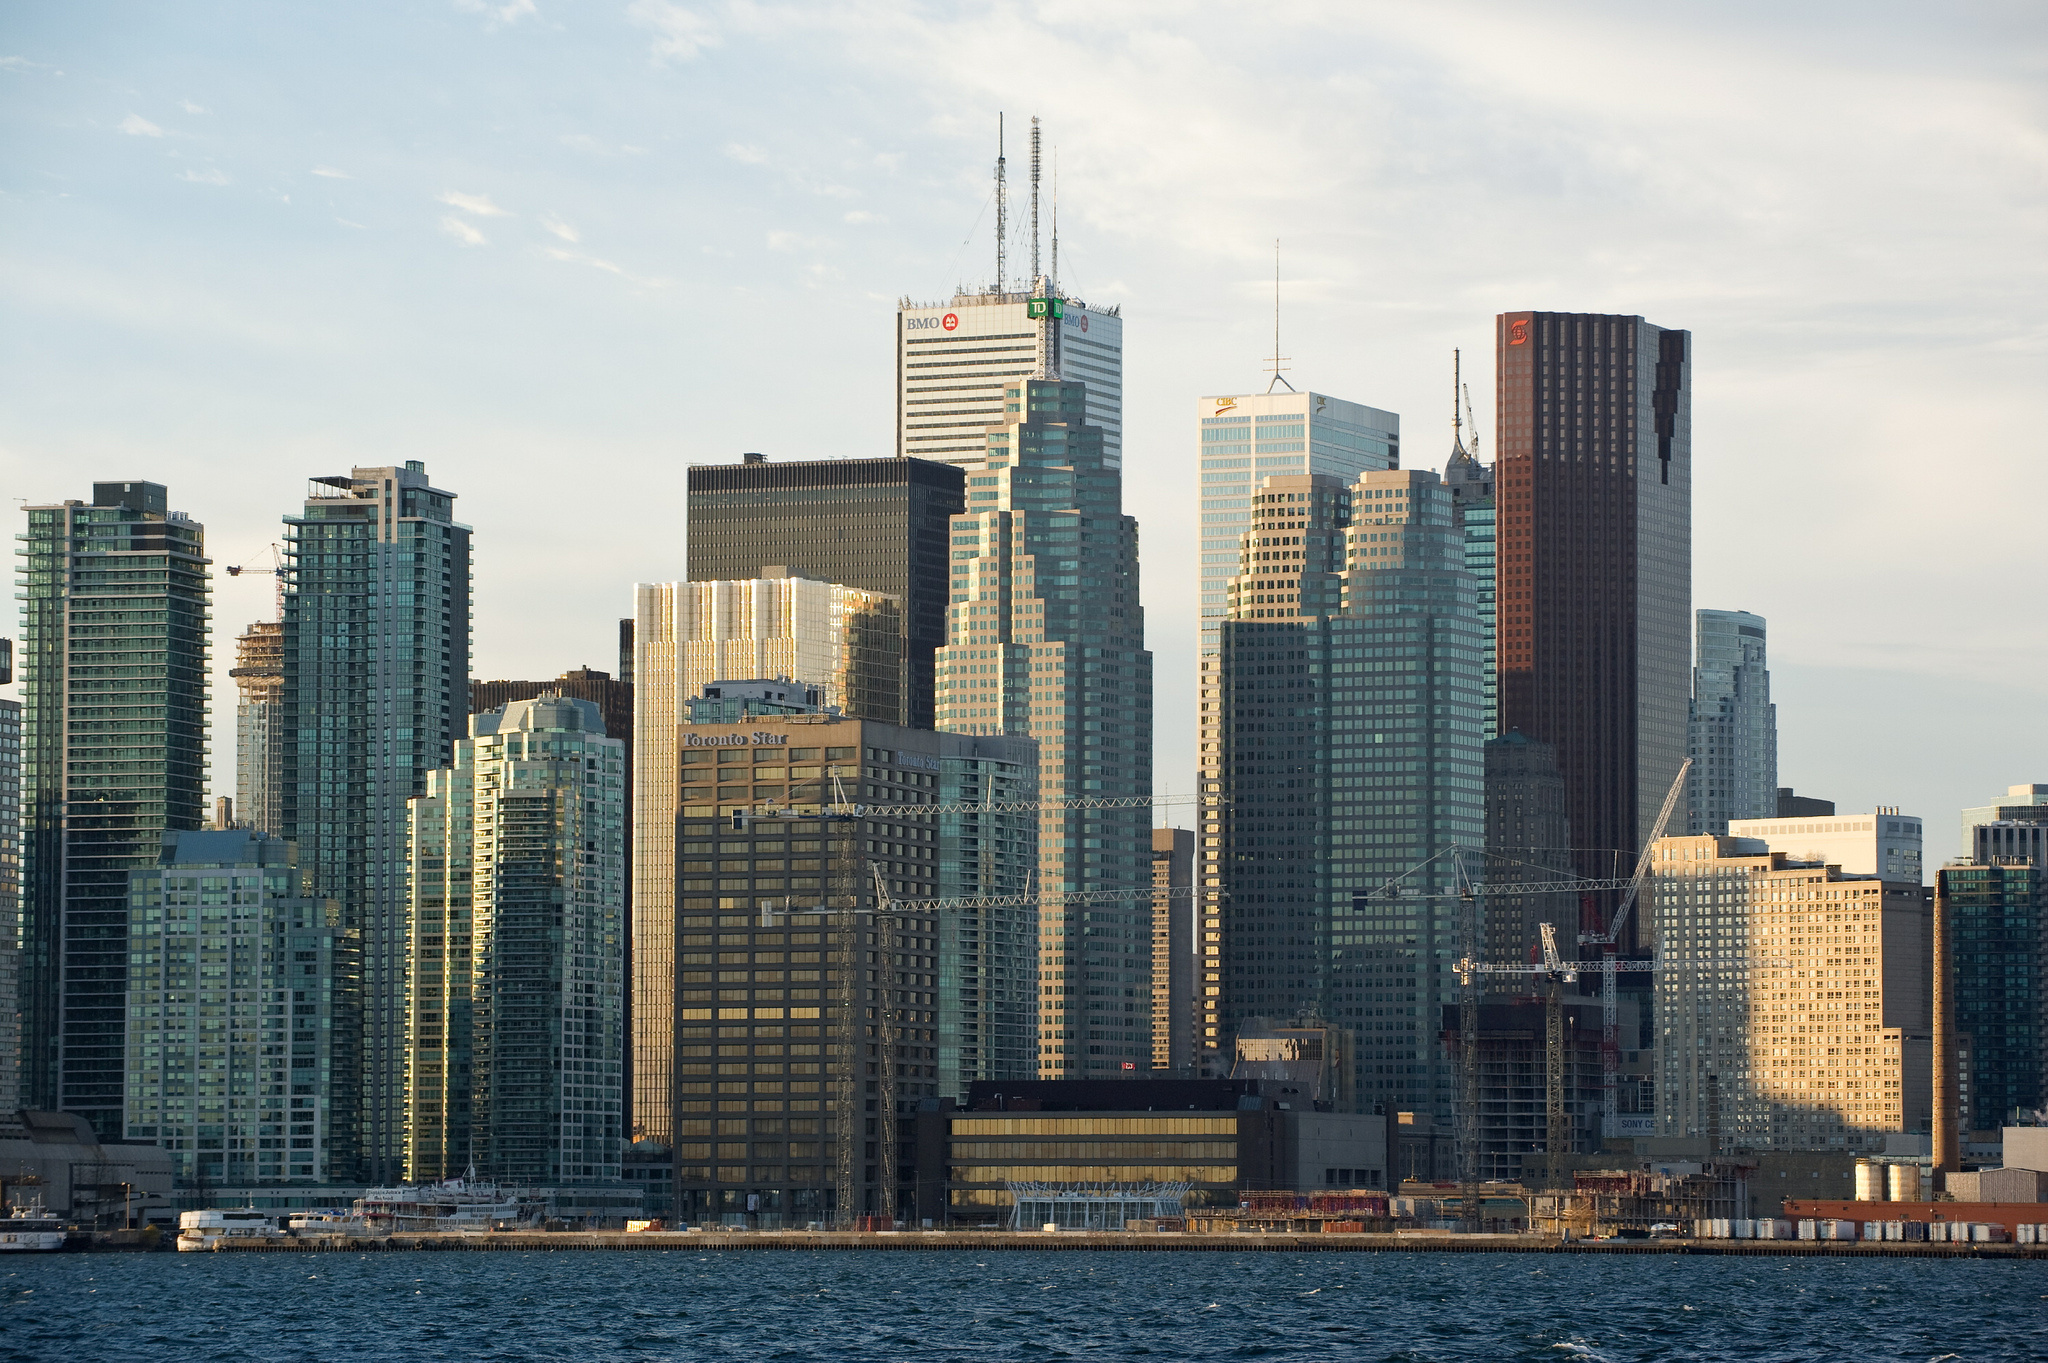 Toronto is named one of the best places for a millennial to start